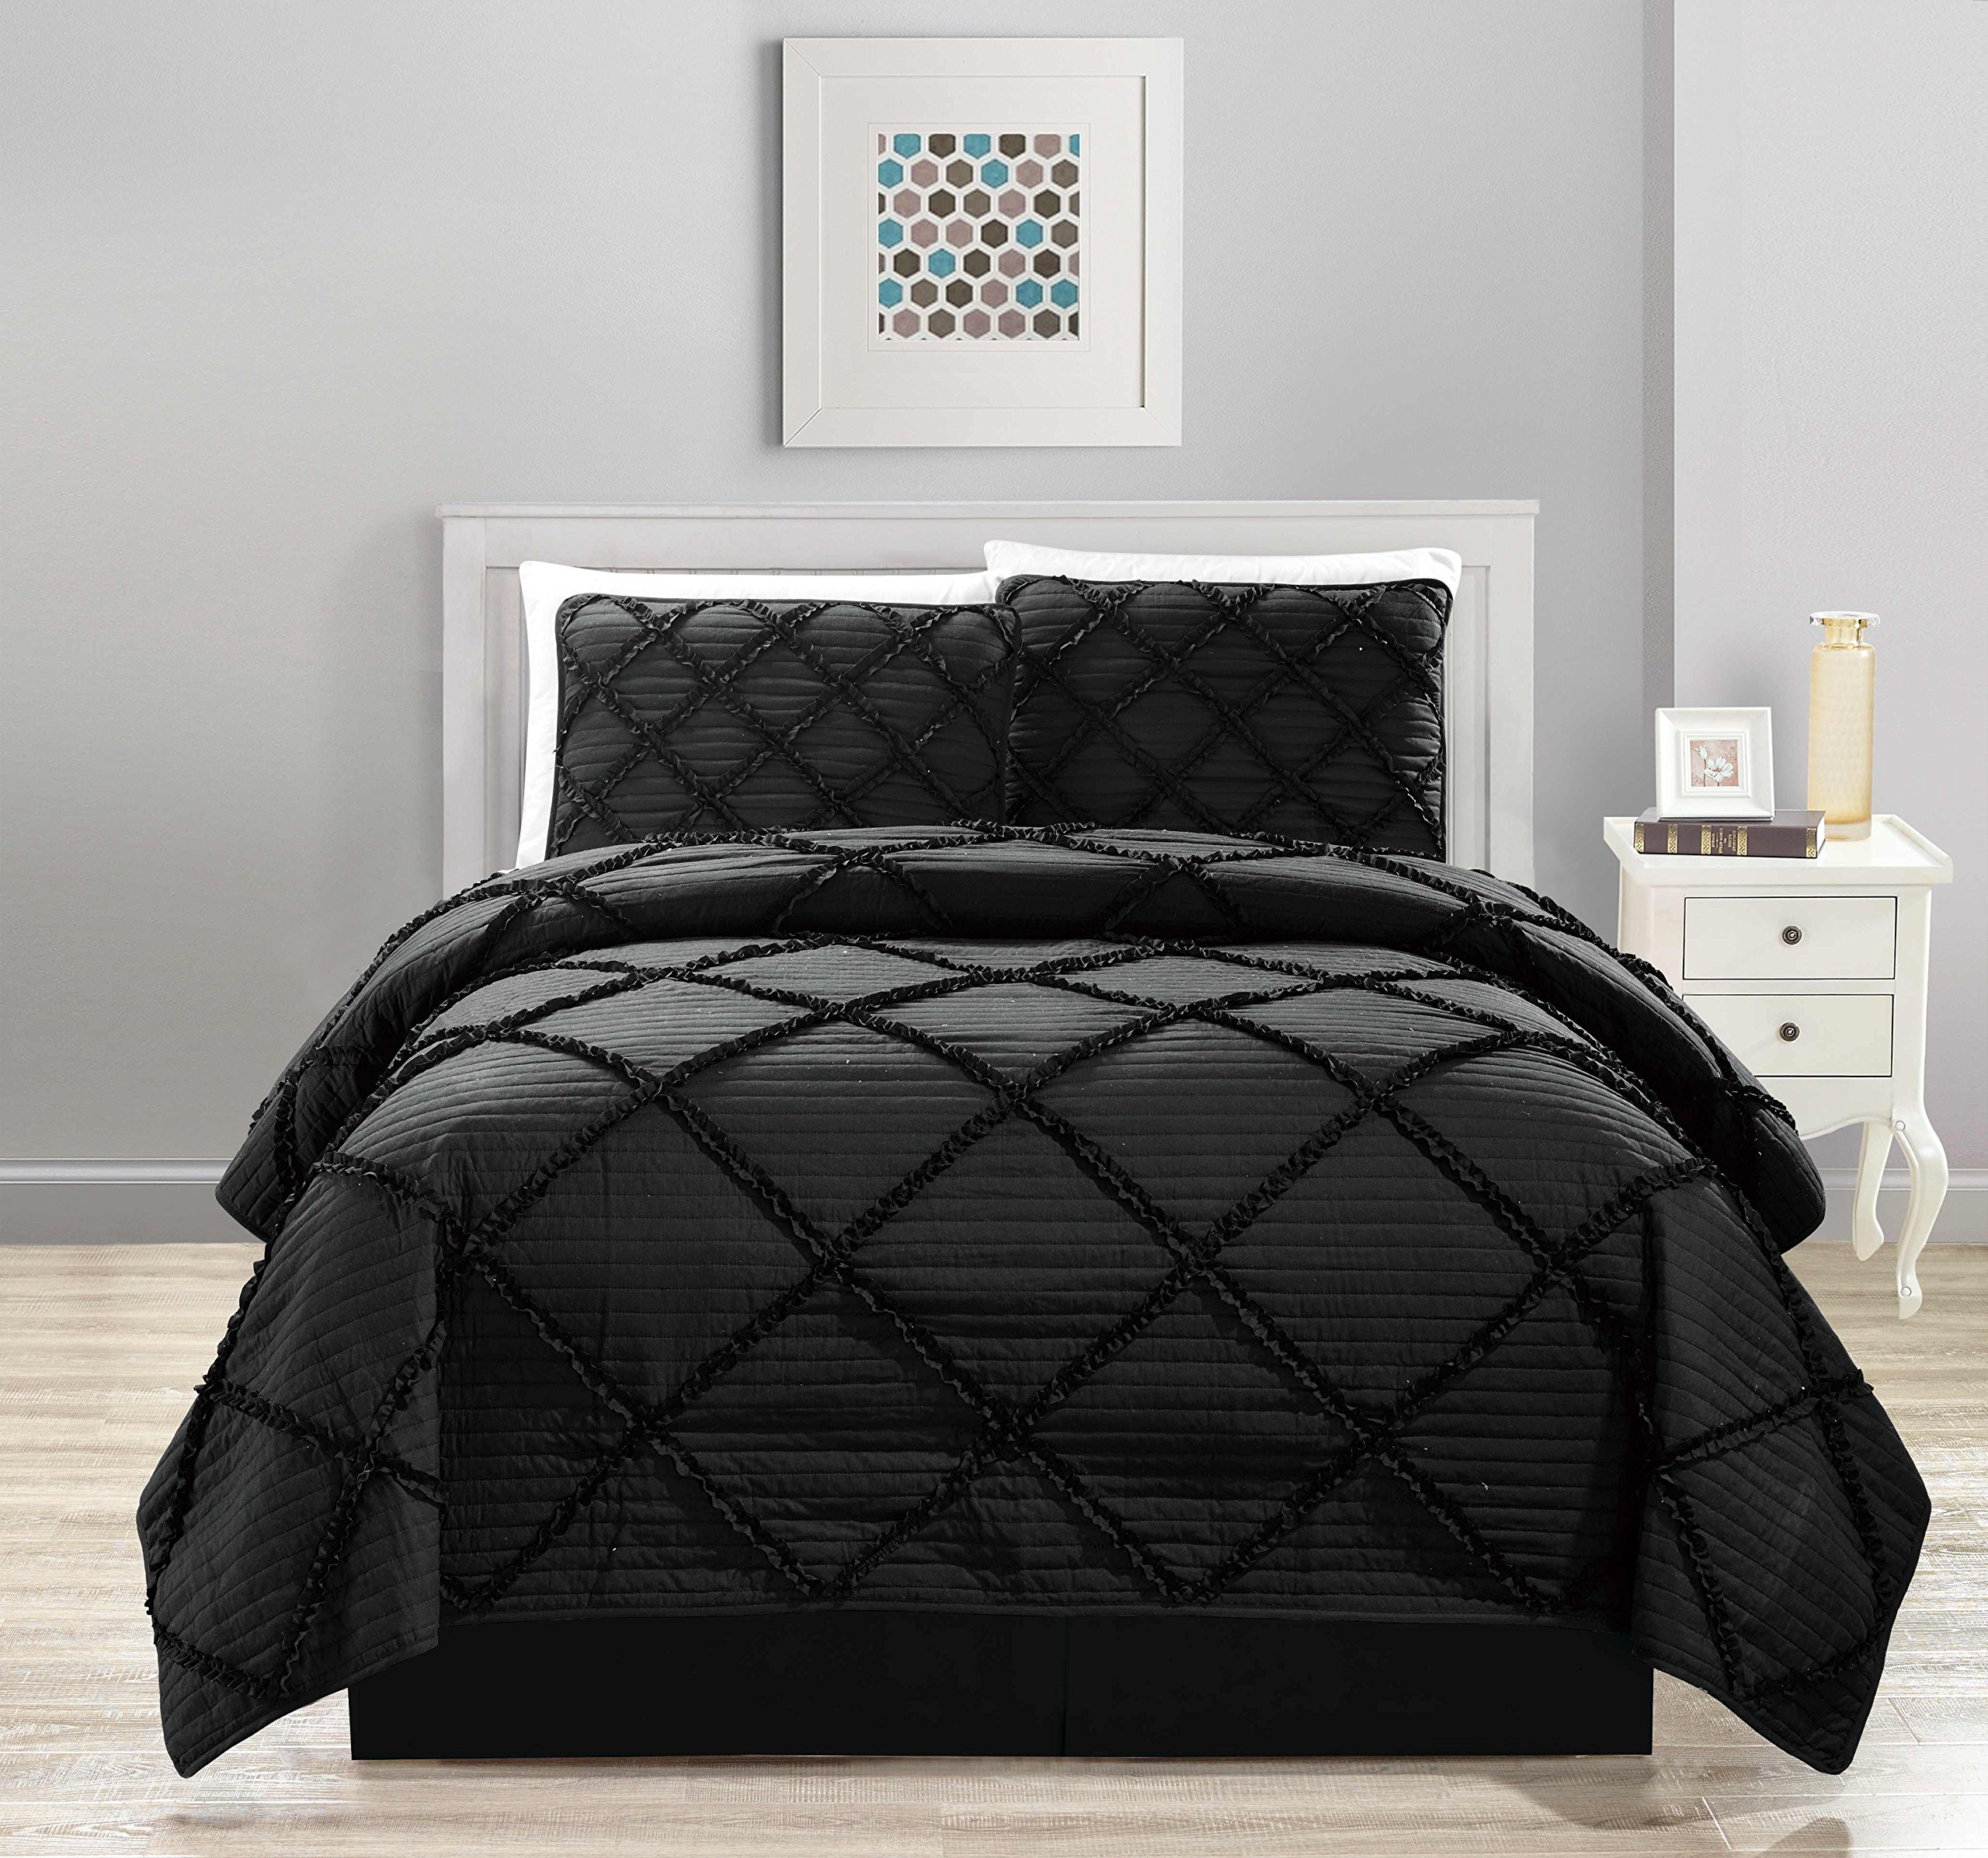 All American Collection New 4pc Diamond Pleated Ruffle Bedspread/Quilt Set with Bedskirt (King Size, Black)